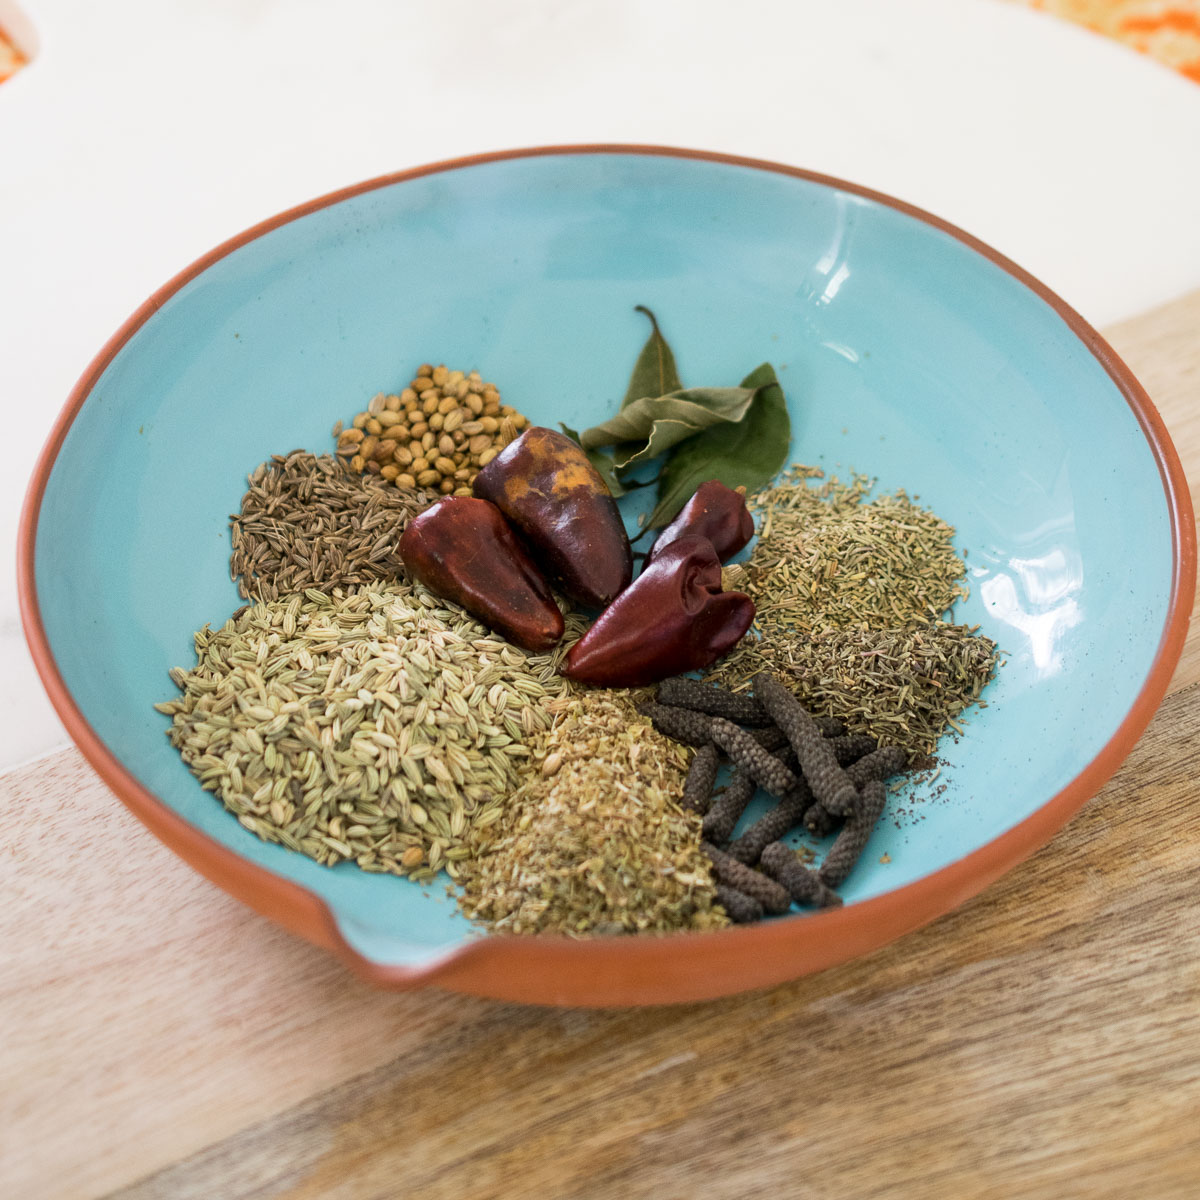 Italian seasoning homemade spice blend